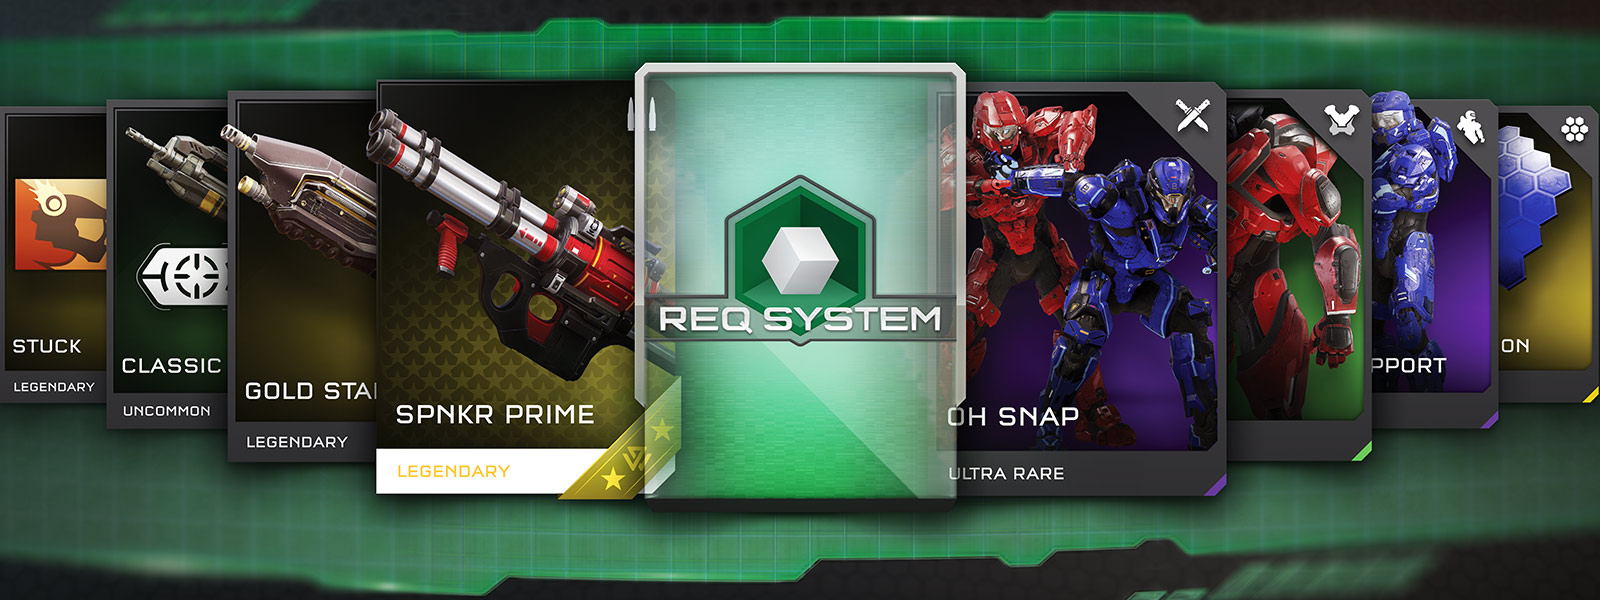 REQ system in-game cards